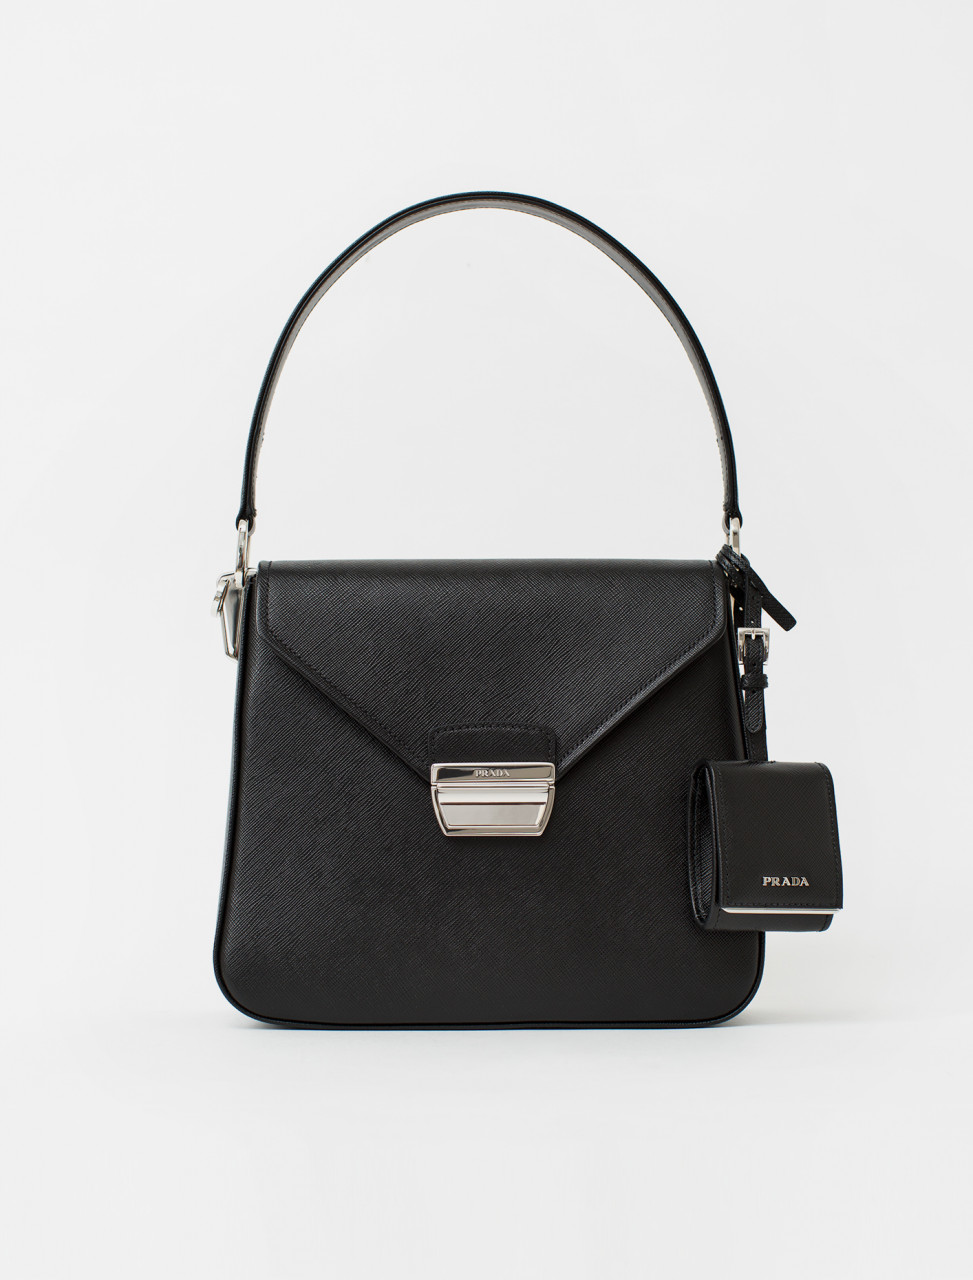 Saffiano Luxe Leather Handbag in Black